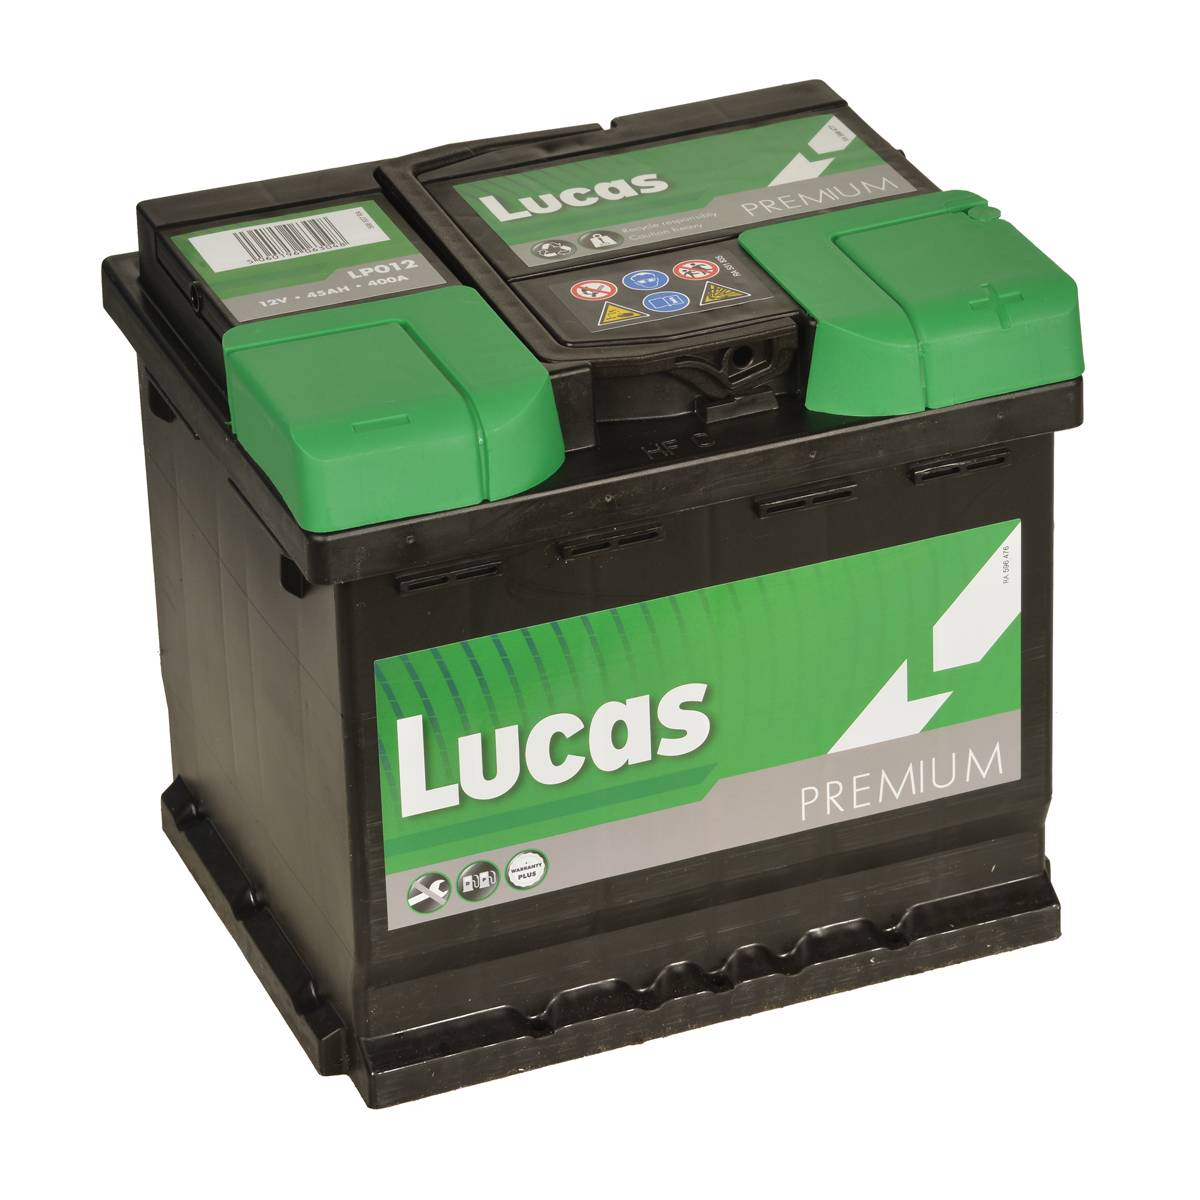 Lucas Premium LP012 Car Battery